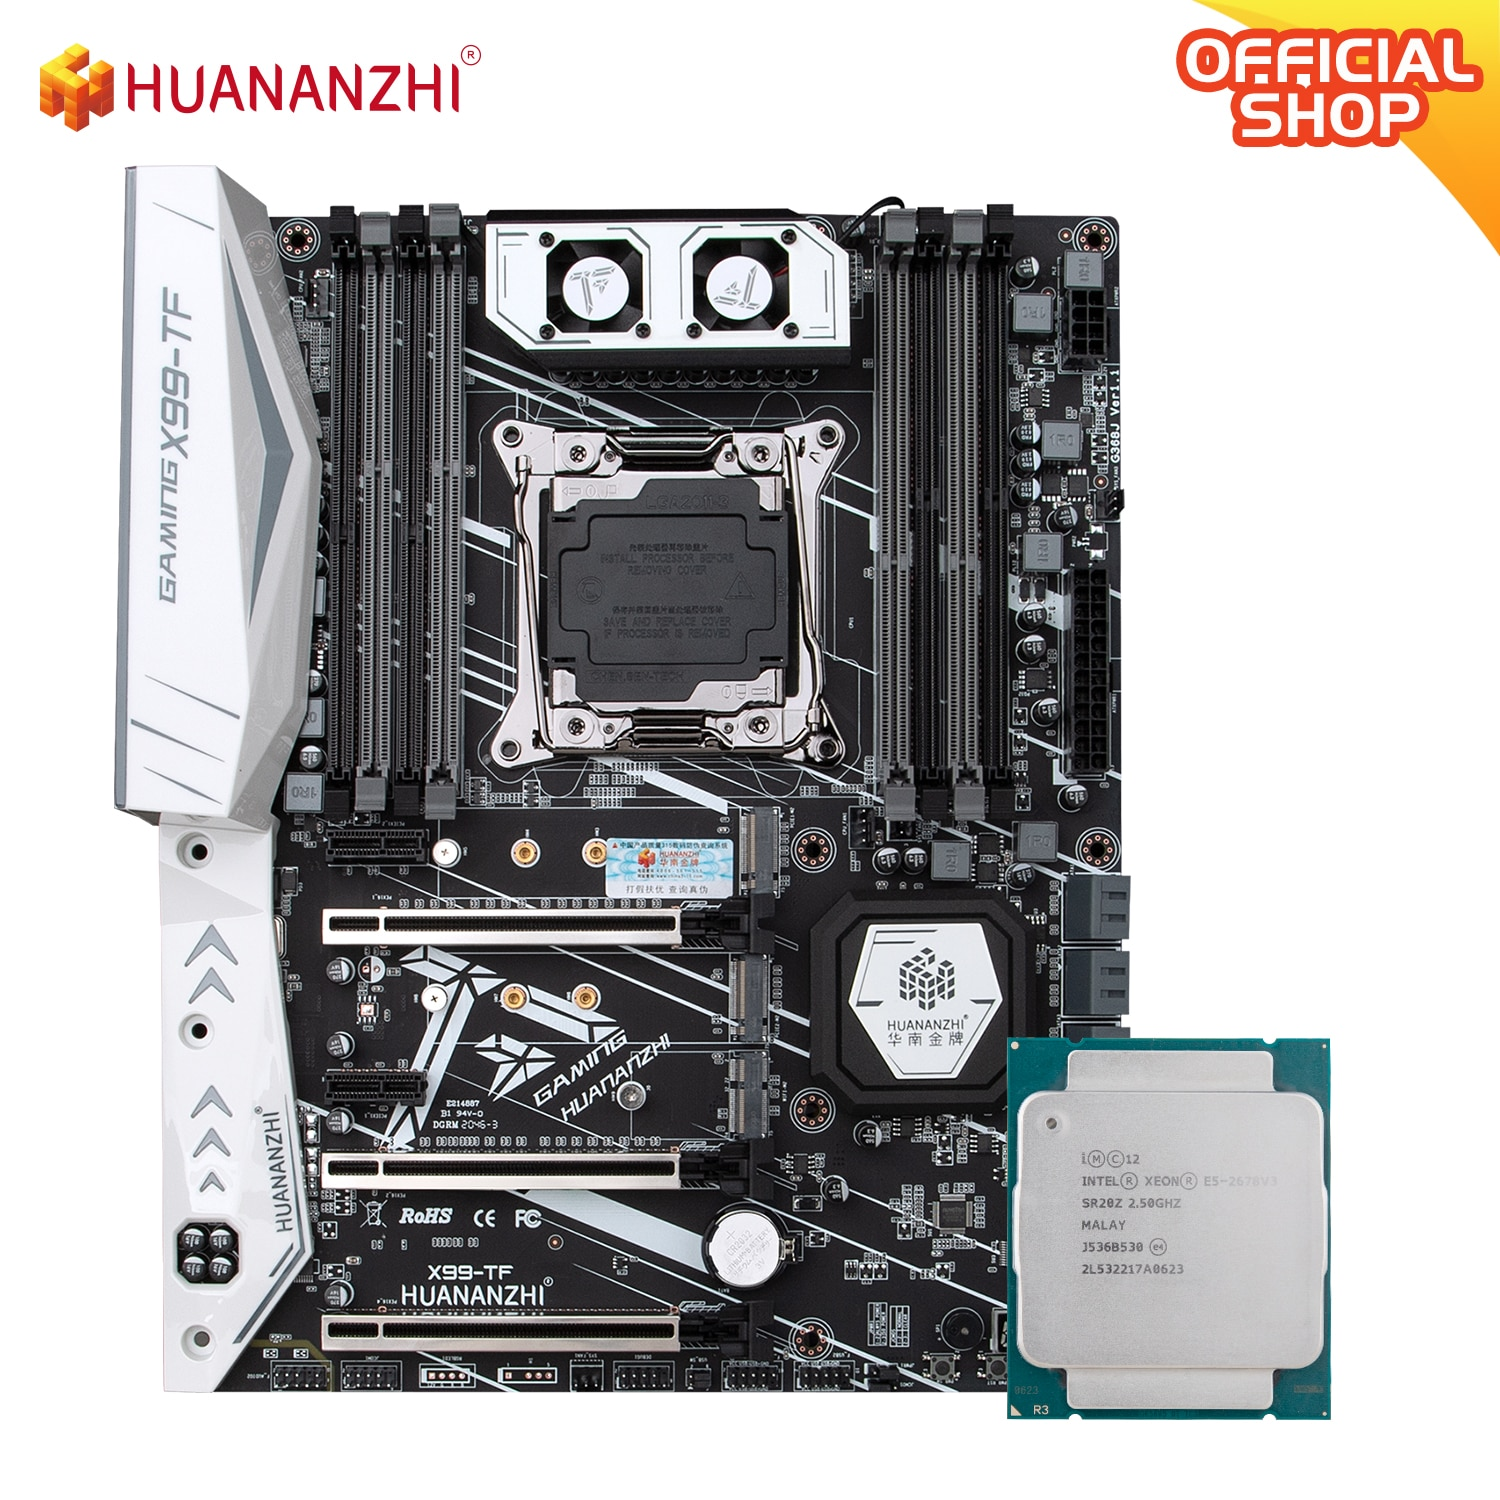 HUANANZHI X99 TF X99 Motherboard Intel with XEON E5 2678 V3 DDR3 DDR4 RECC memory combo kit set NVME SATA 3.0 USB3.0 ATX Server